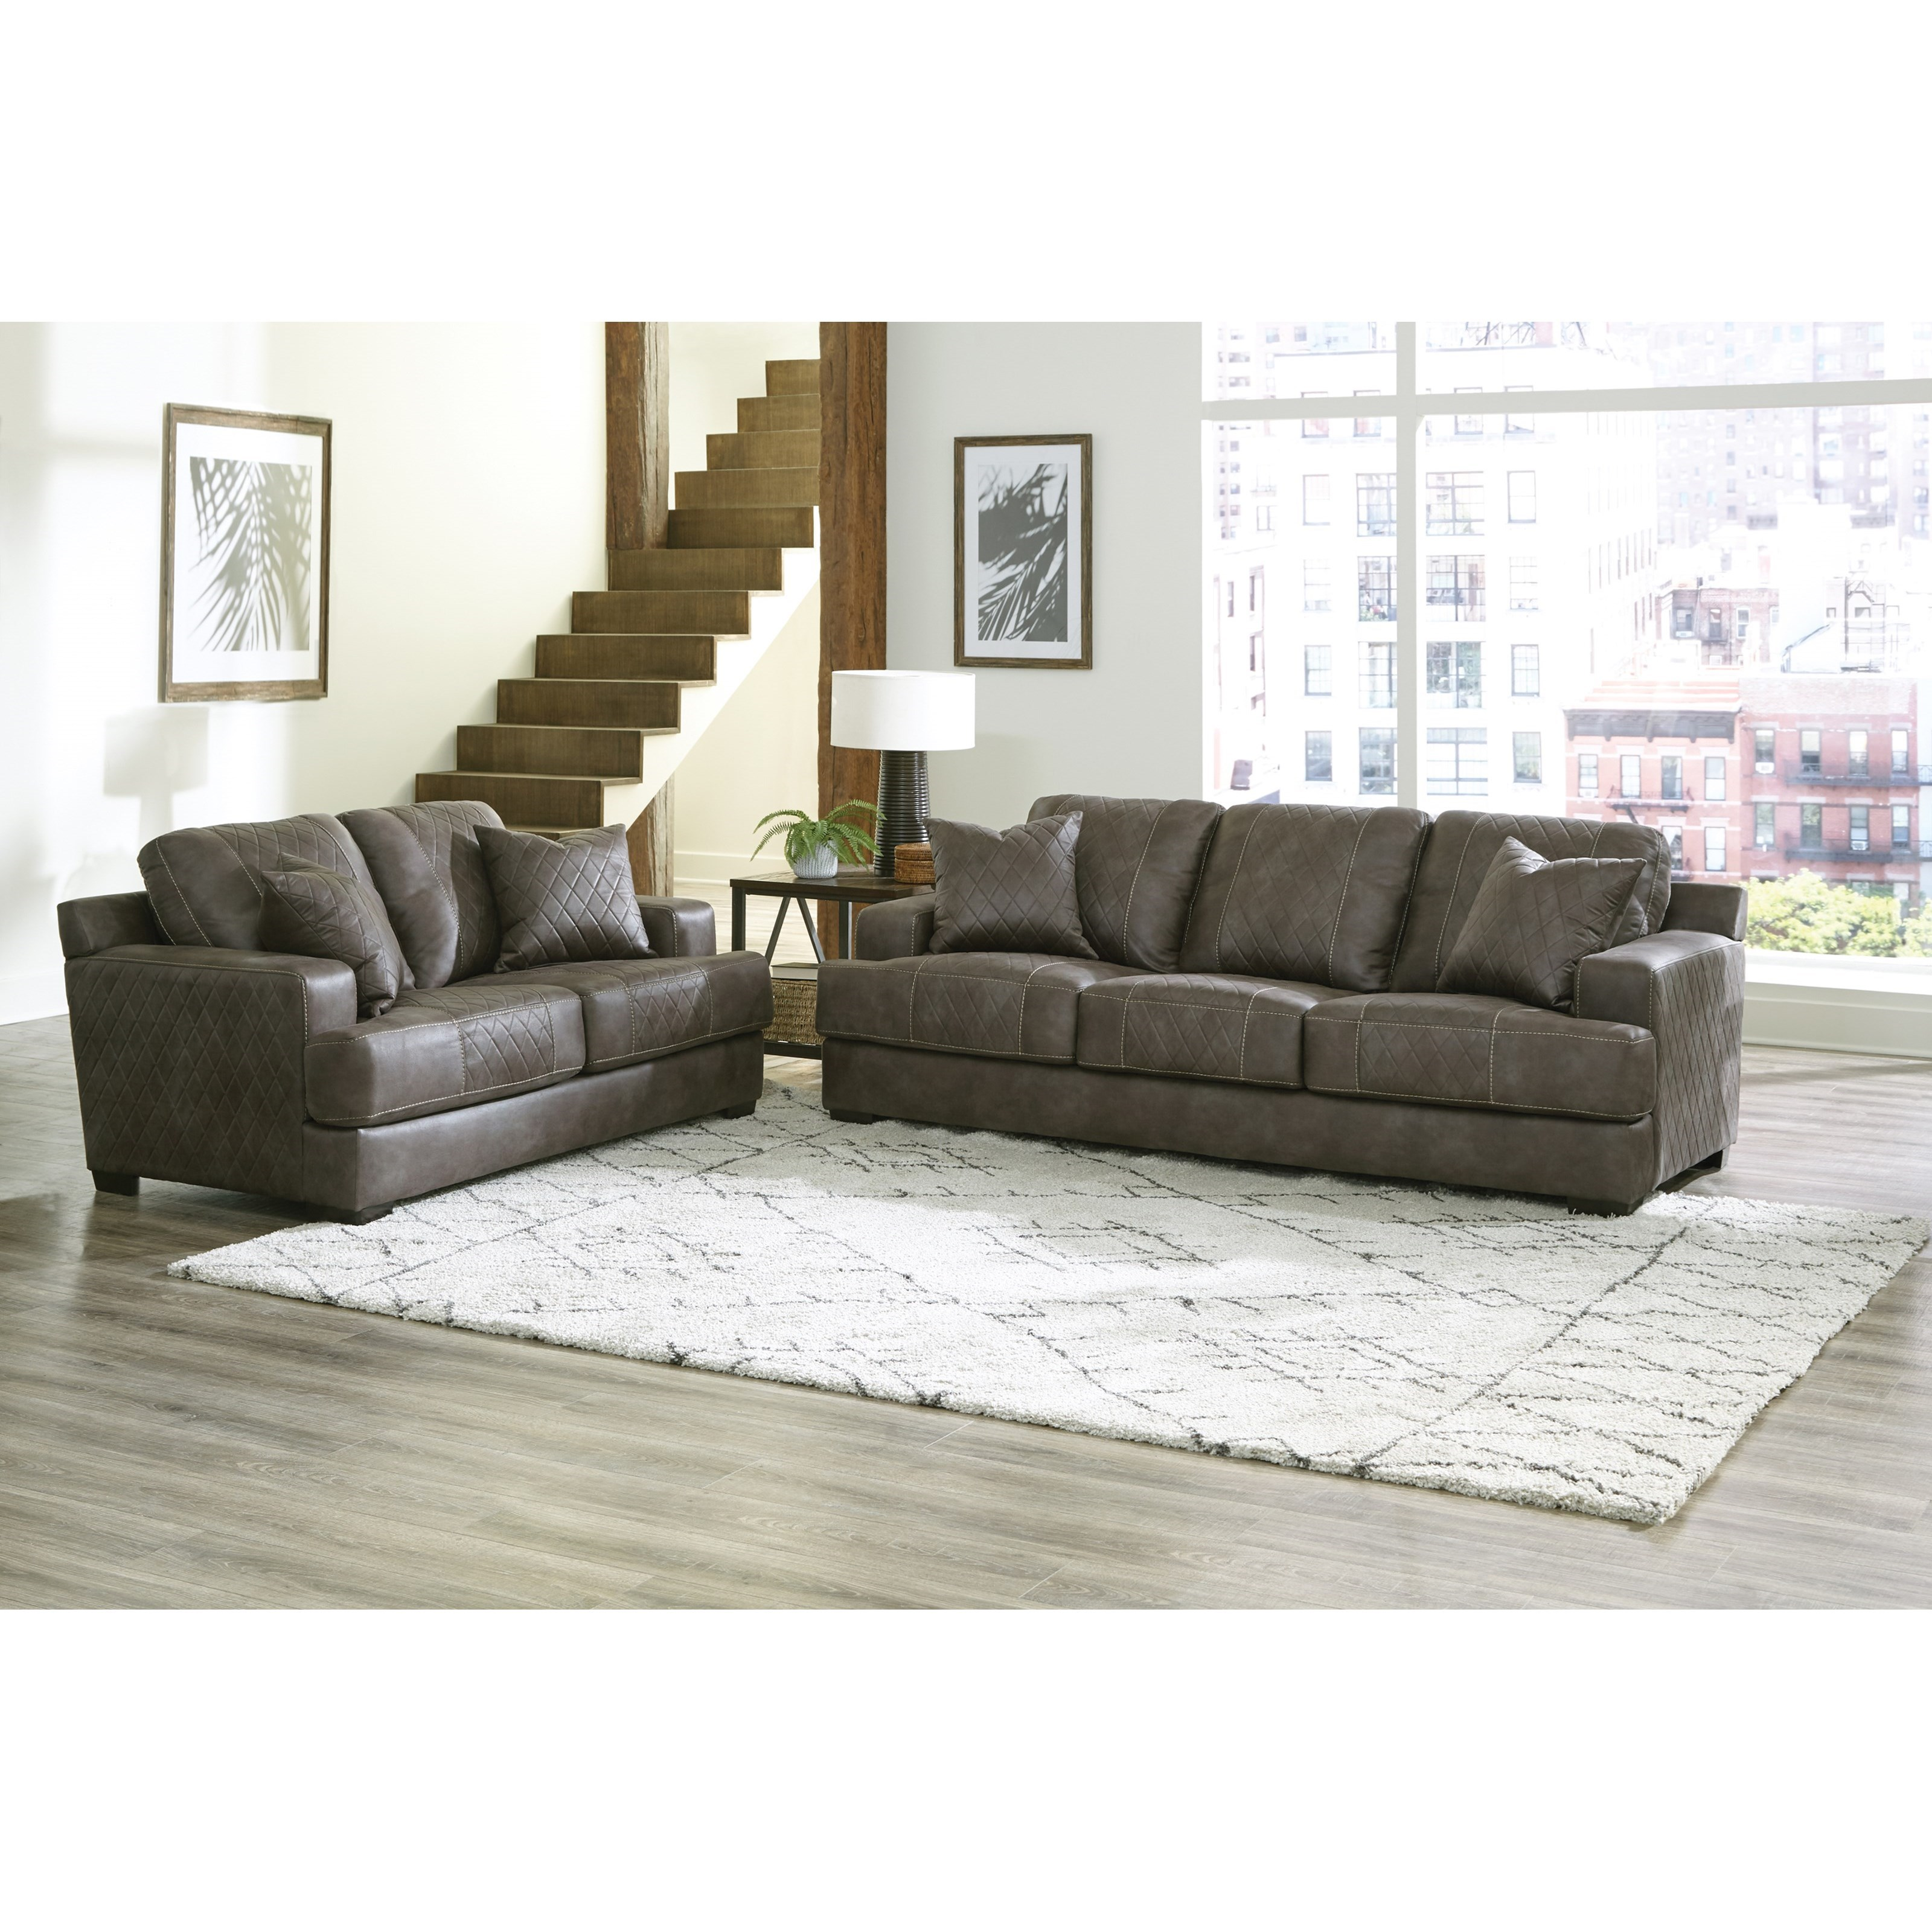 Rory Living Room Group by Jackson Furniture at Northeast Factory Direct